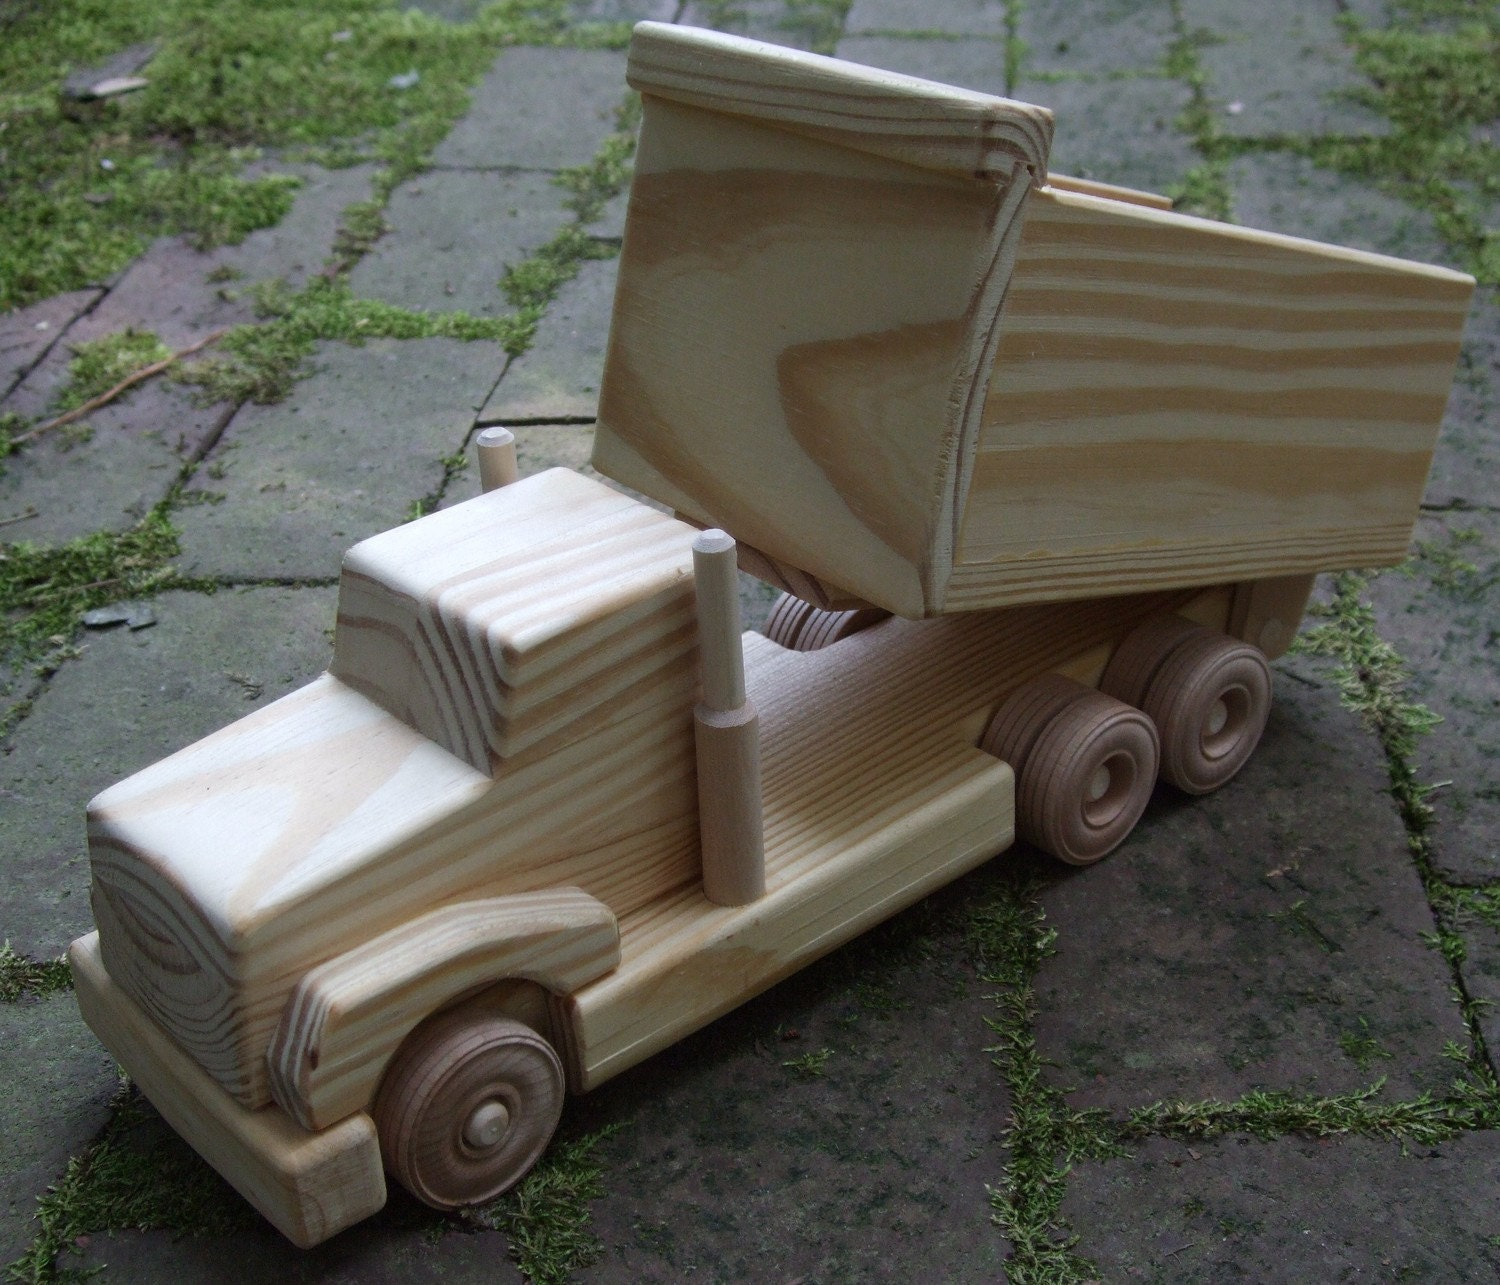 Wooden Toy Cars And Trucks : Dump truck wooden toy featured in mothering magazine